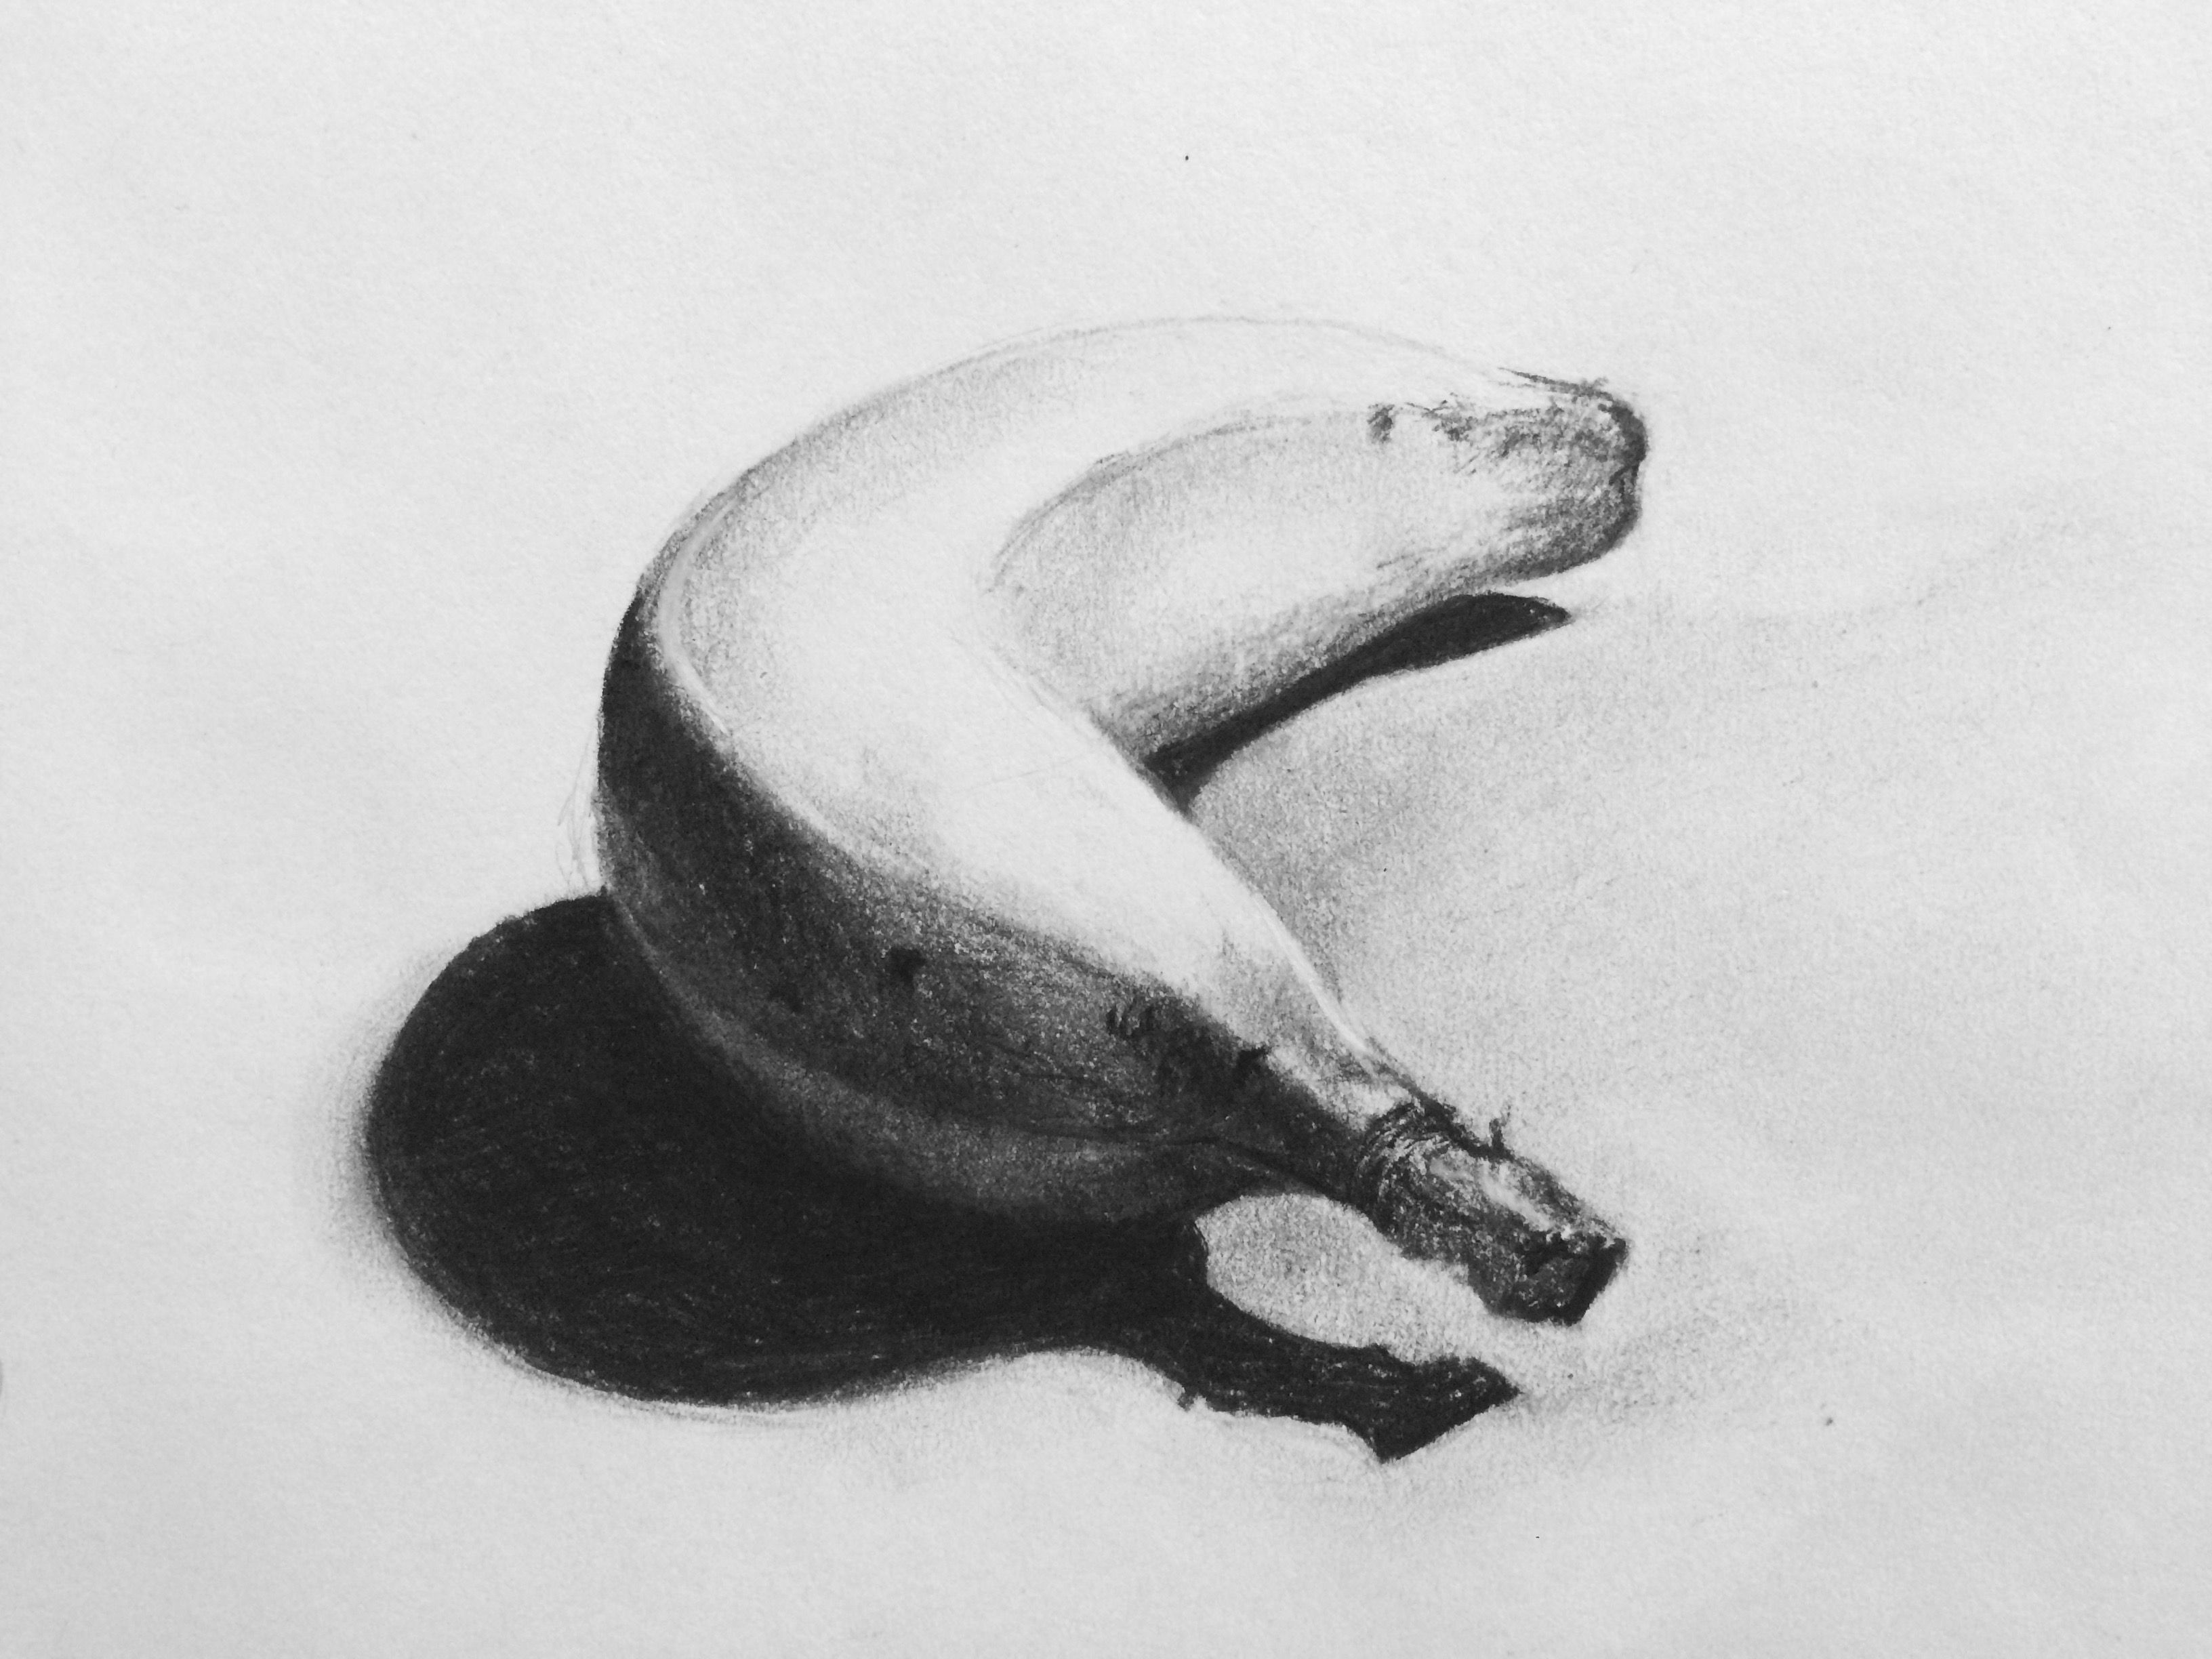 This banana study was completed in charcoal as part of ...